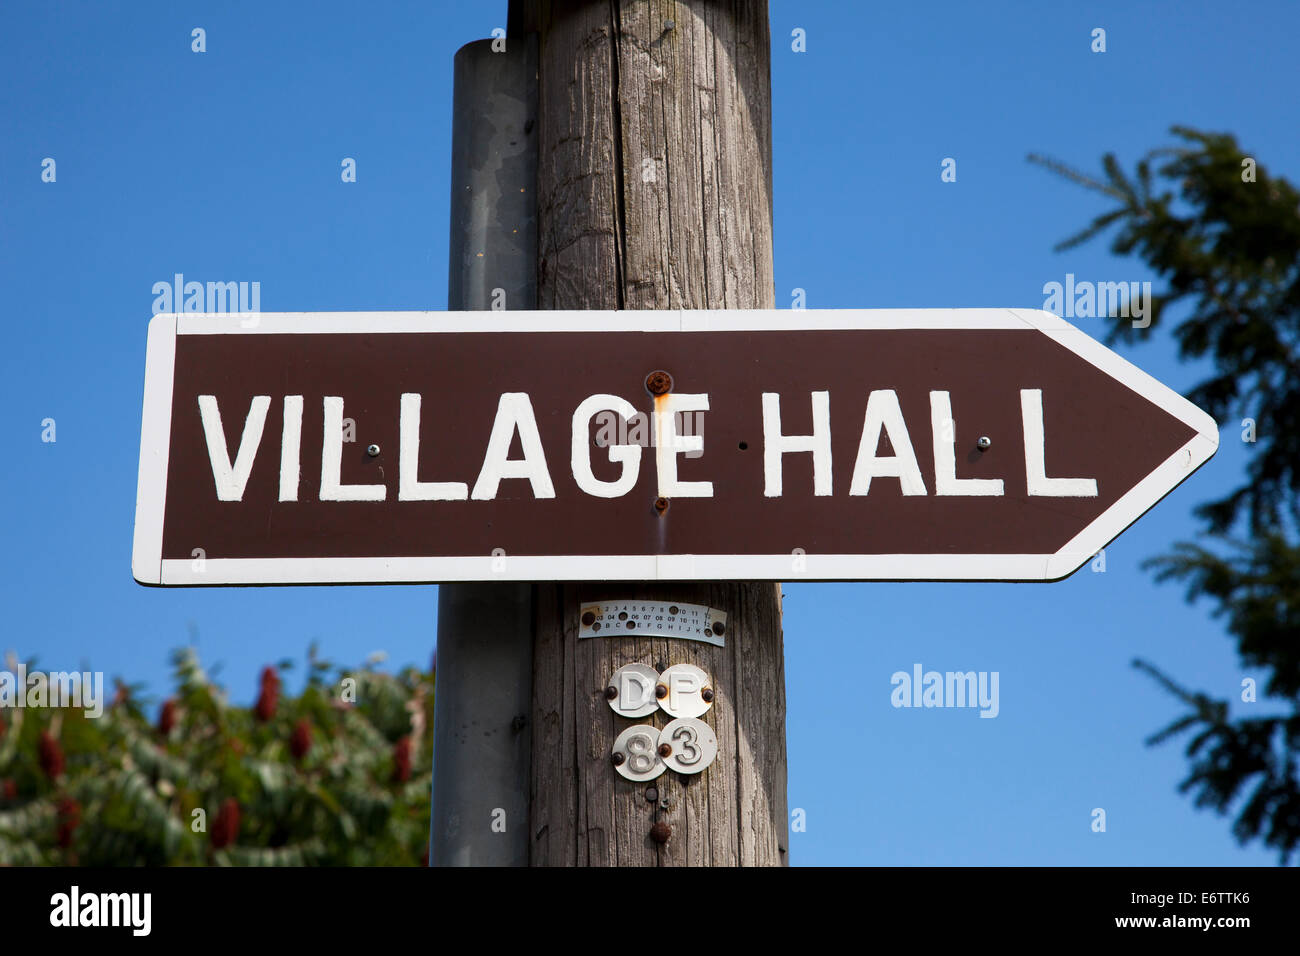 A village hall sign in the U.K. - Stock Image